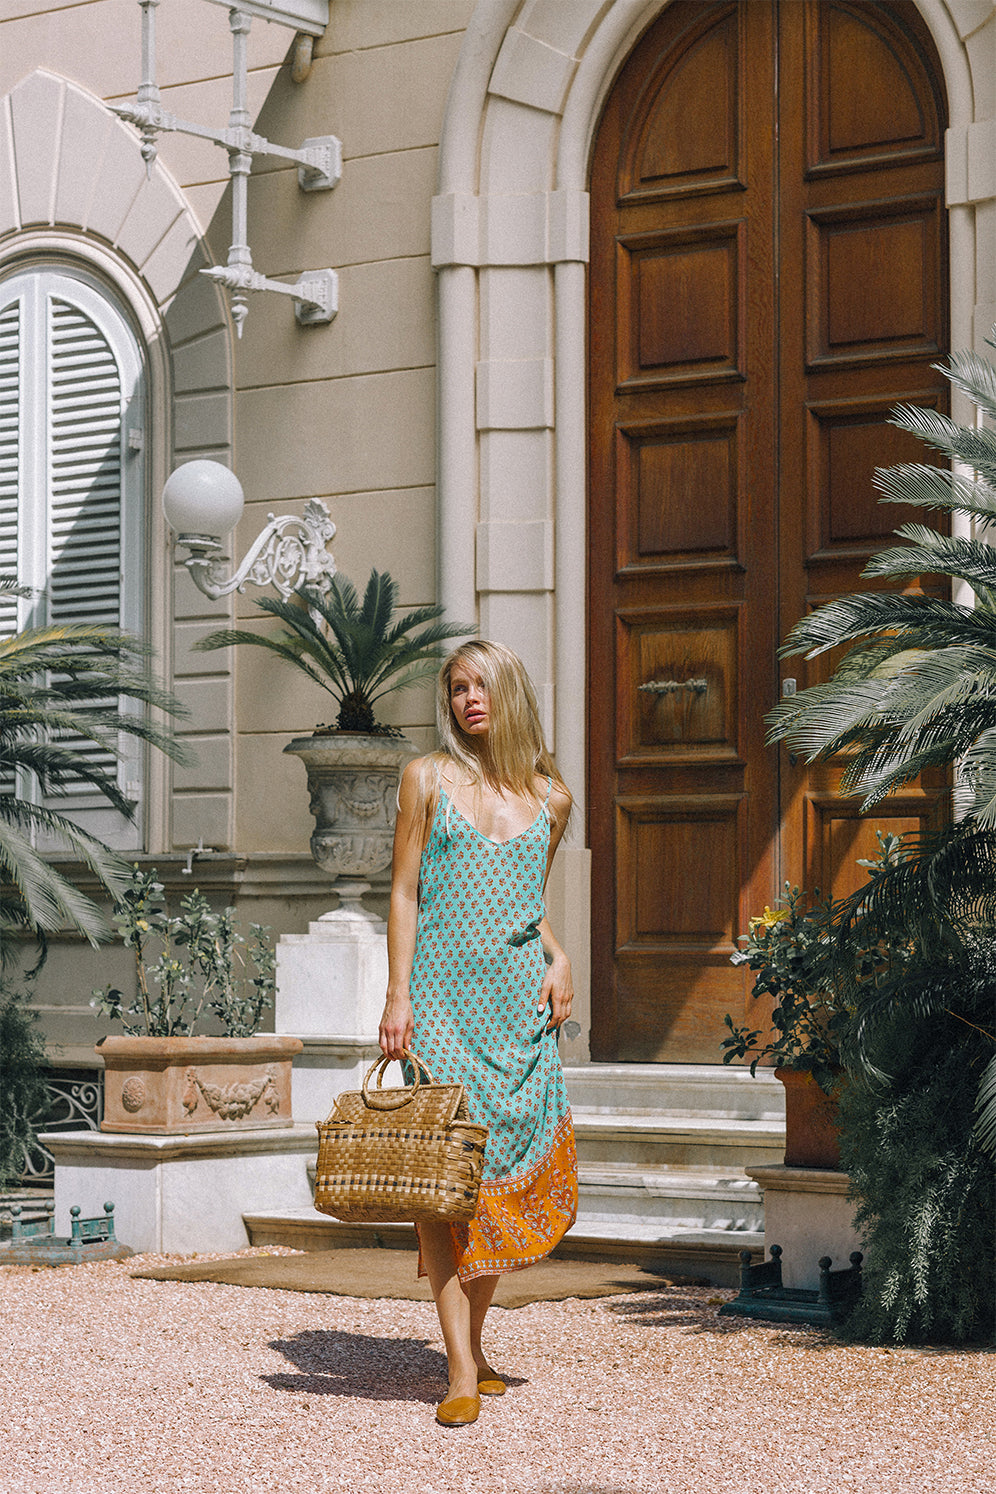 Sustainable ethical fashion from Byron Bay brand Arnhem